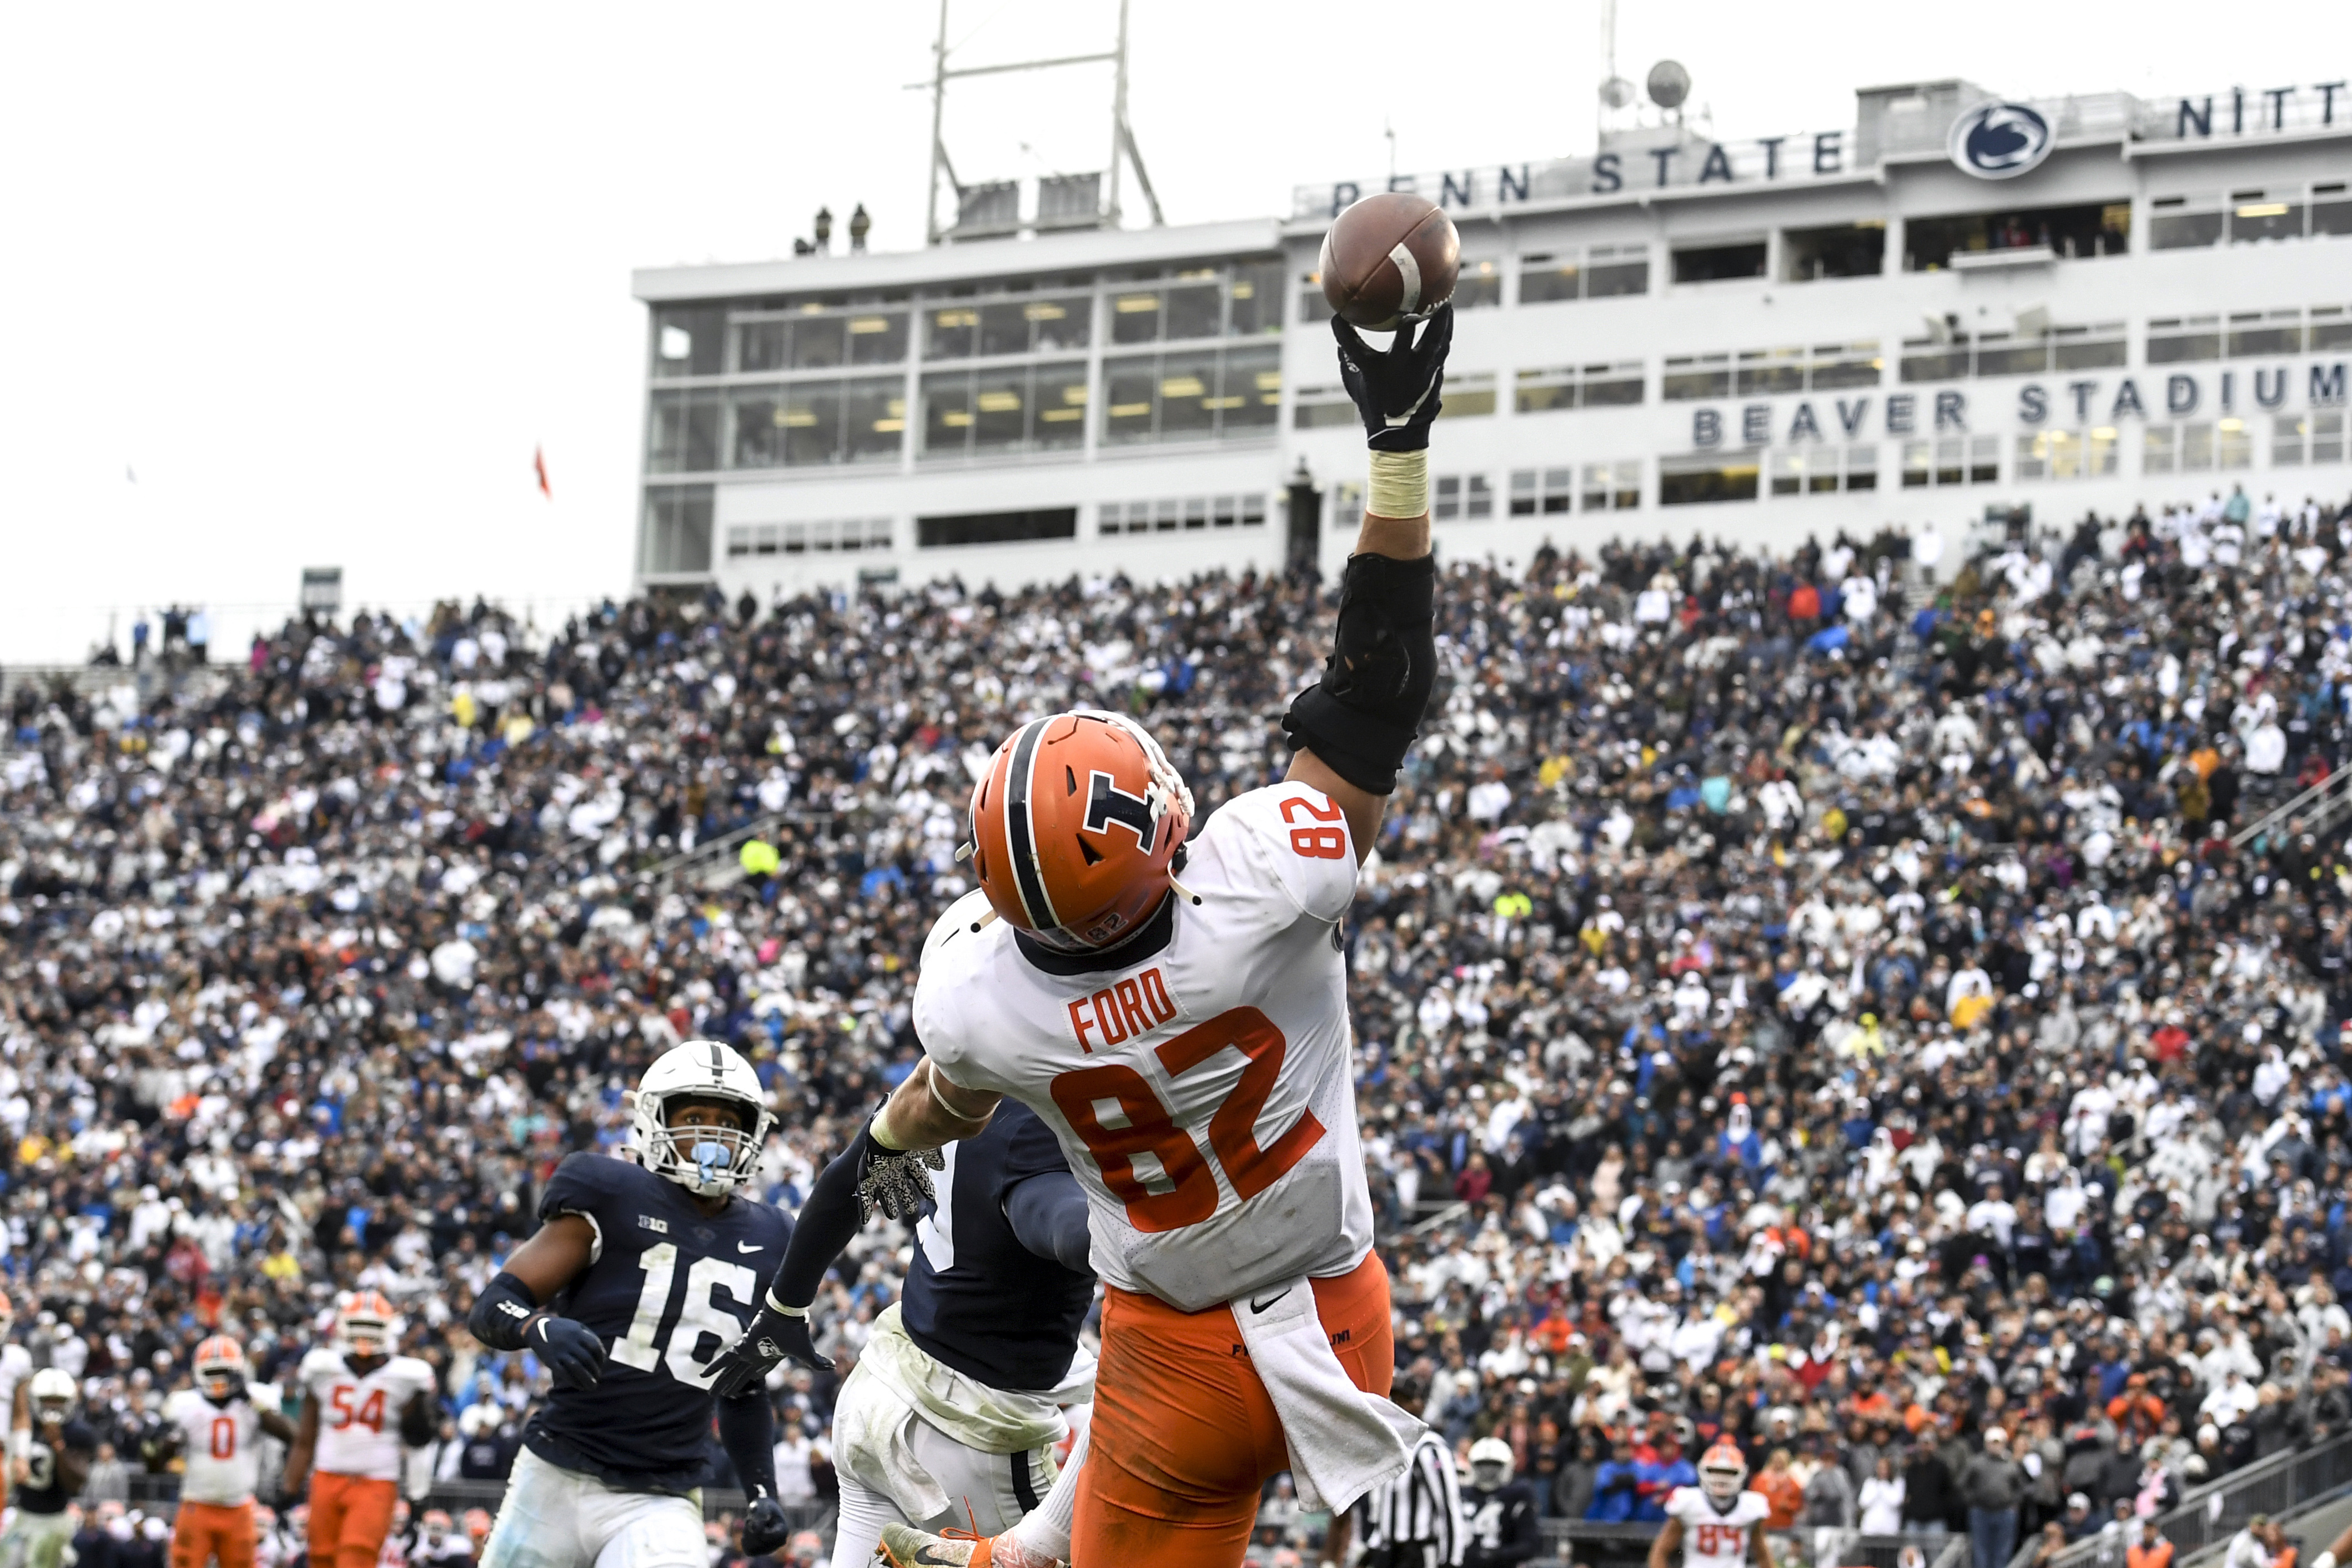 Illinois defeated Penn State in a nine-overtime game on Saturday.